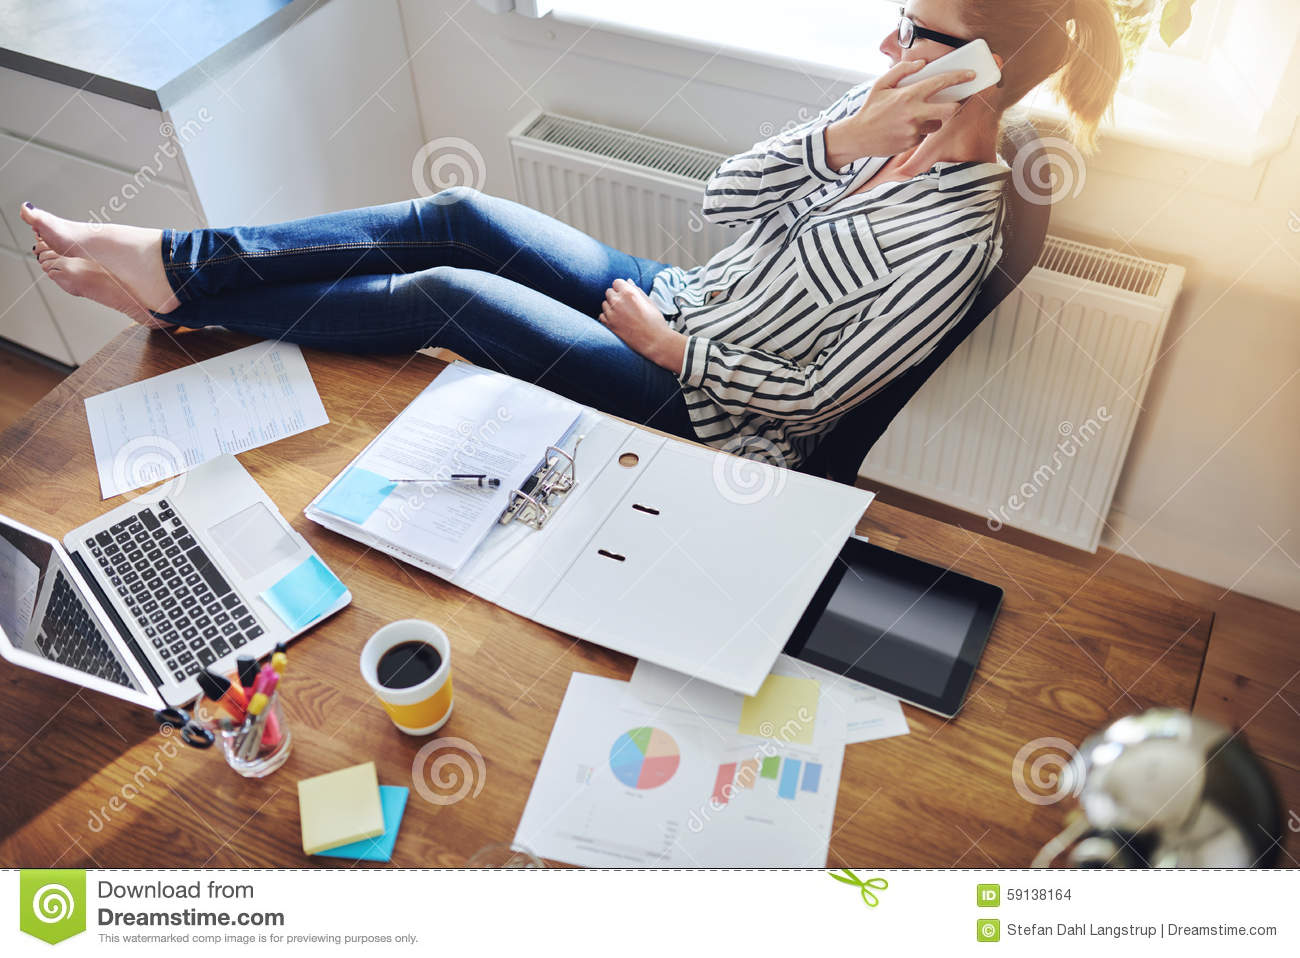 relaxed-confident-female-entrepreneur-reclining-back-her-chair-her-bare-feet-desk-talking-to-client-her-mobile-59138164